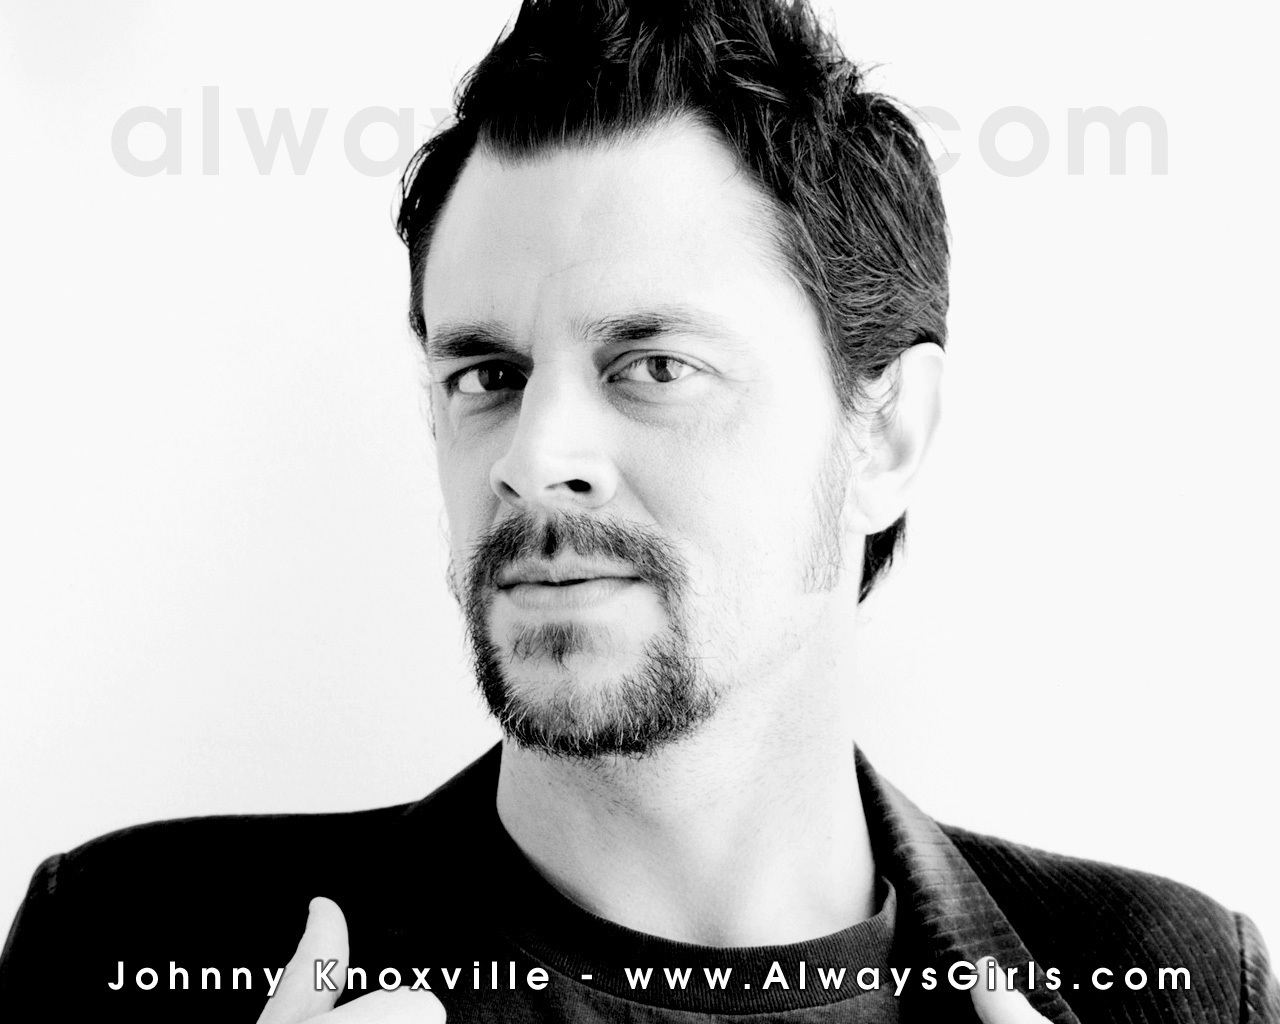 Johnny Knoxville - Wallpaper Hot